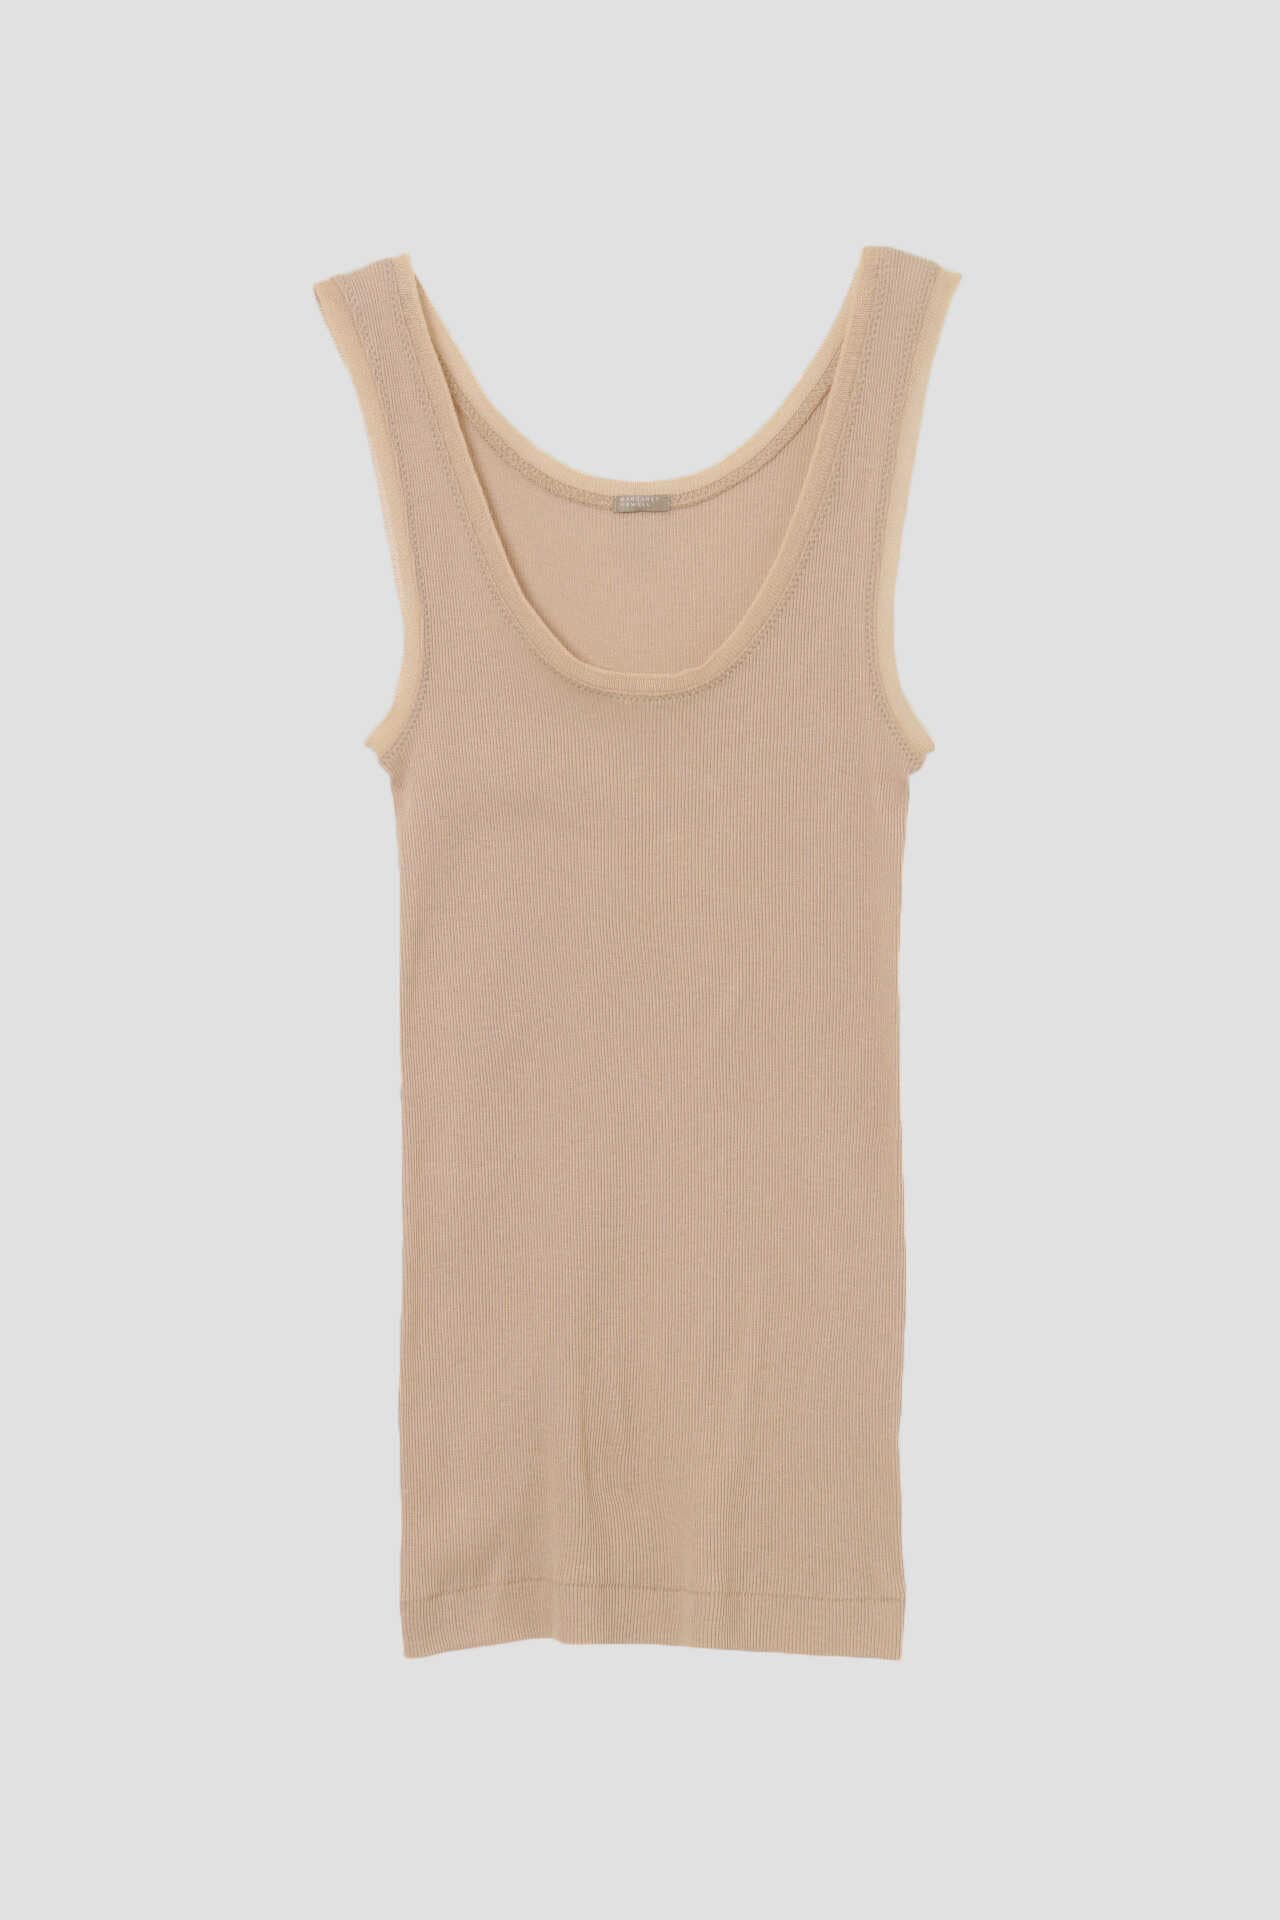 SUPIMA COTTON RIB TANK9